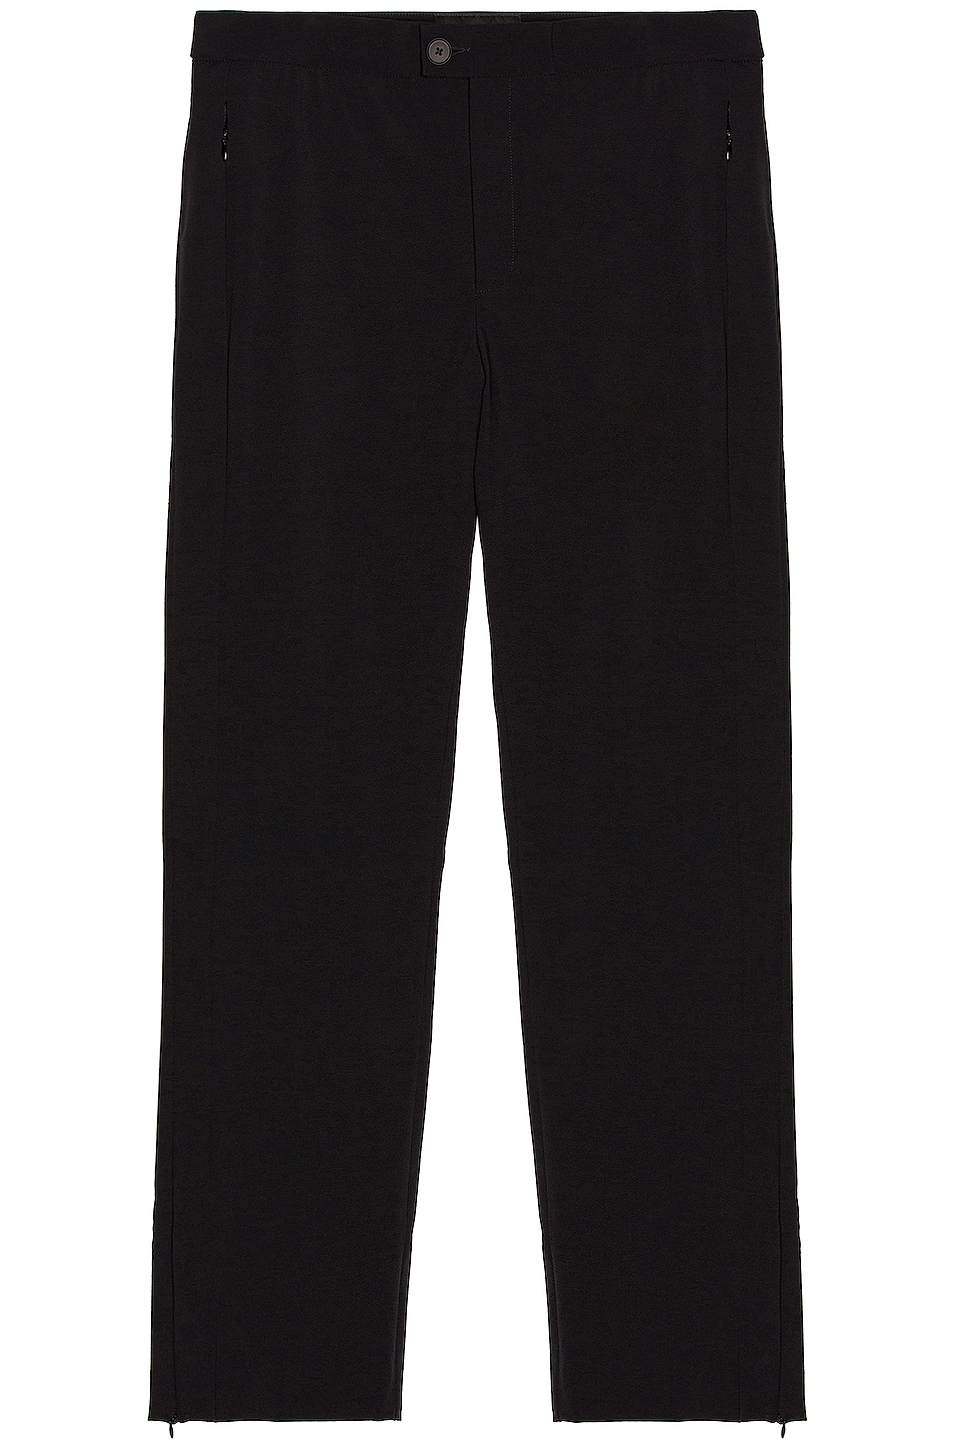 Image 1 of A-COLD-WALL* Technical Tailored Trouser in Black